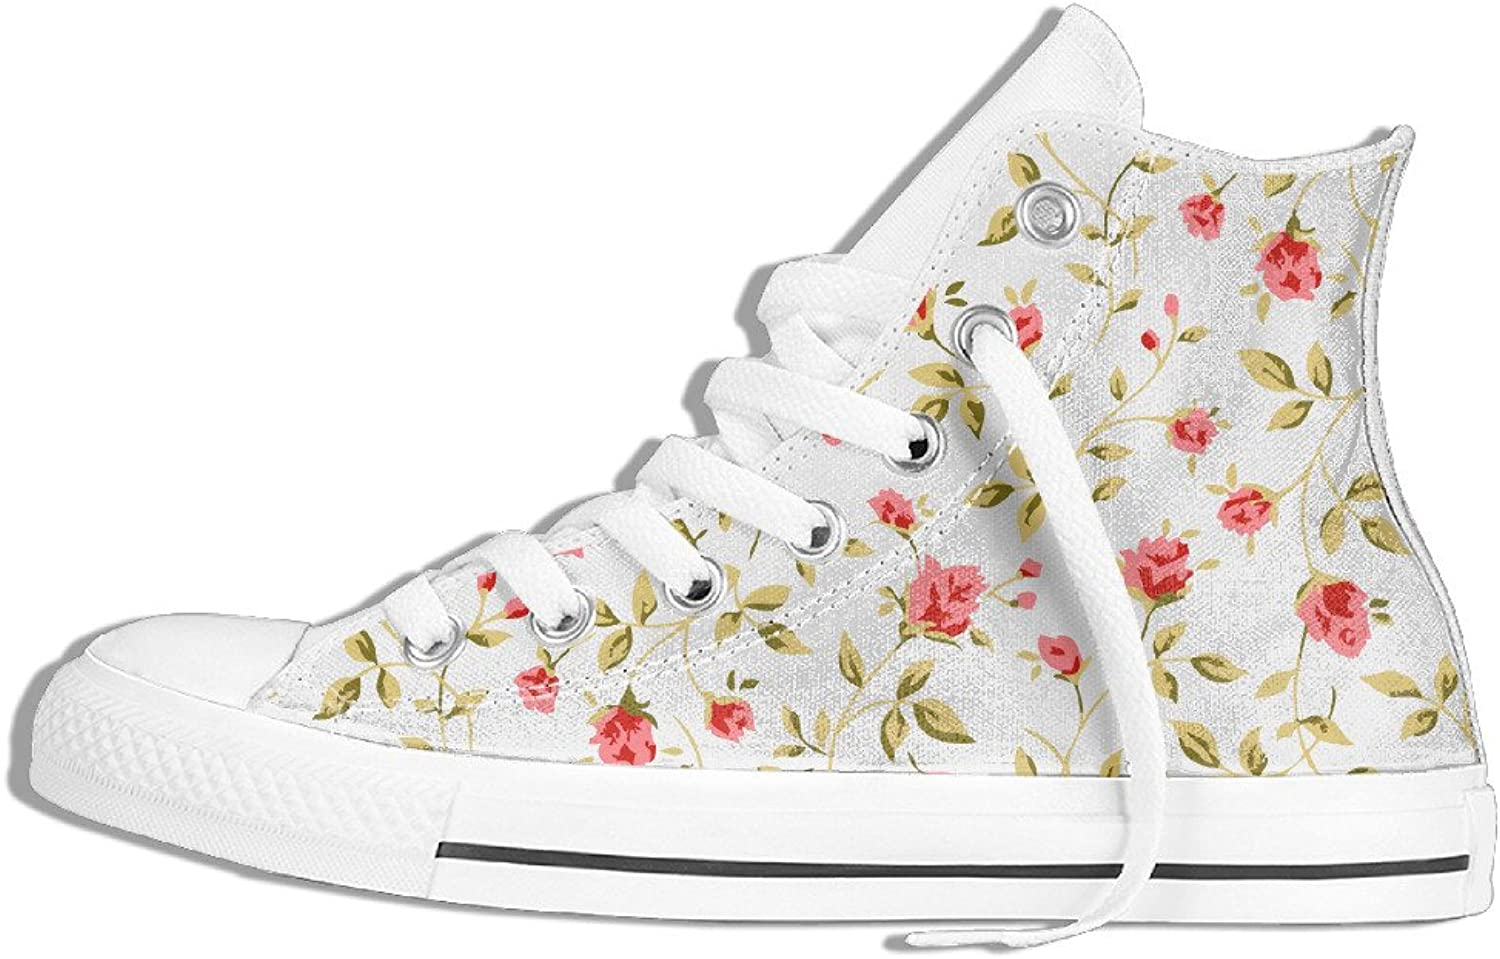 Efbj Vintage Floral Pattern Unisex Leisure High Top Gym shoes Trainers Sneakers for Men and Women